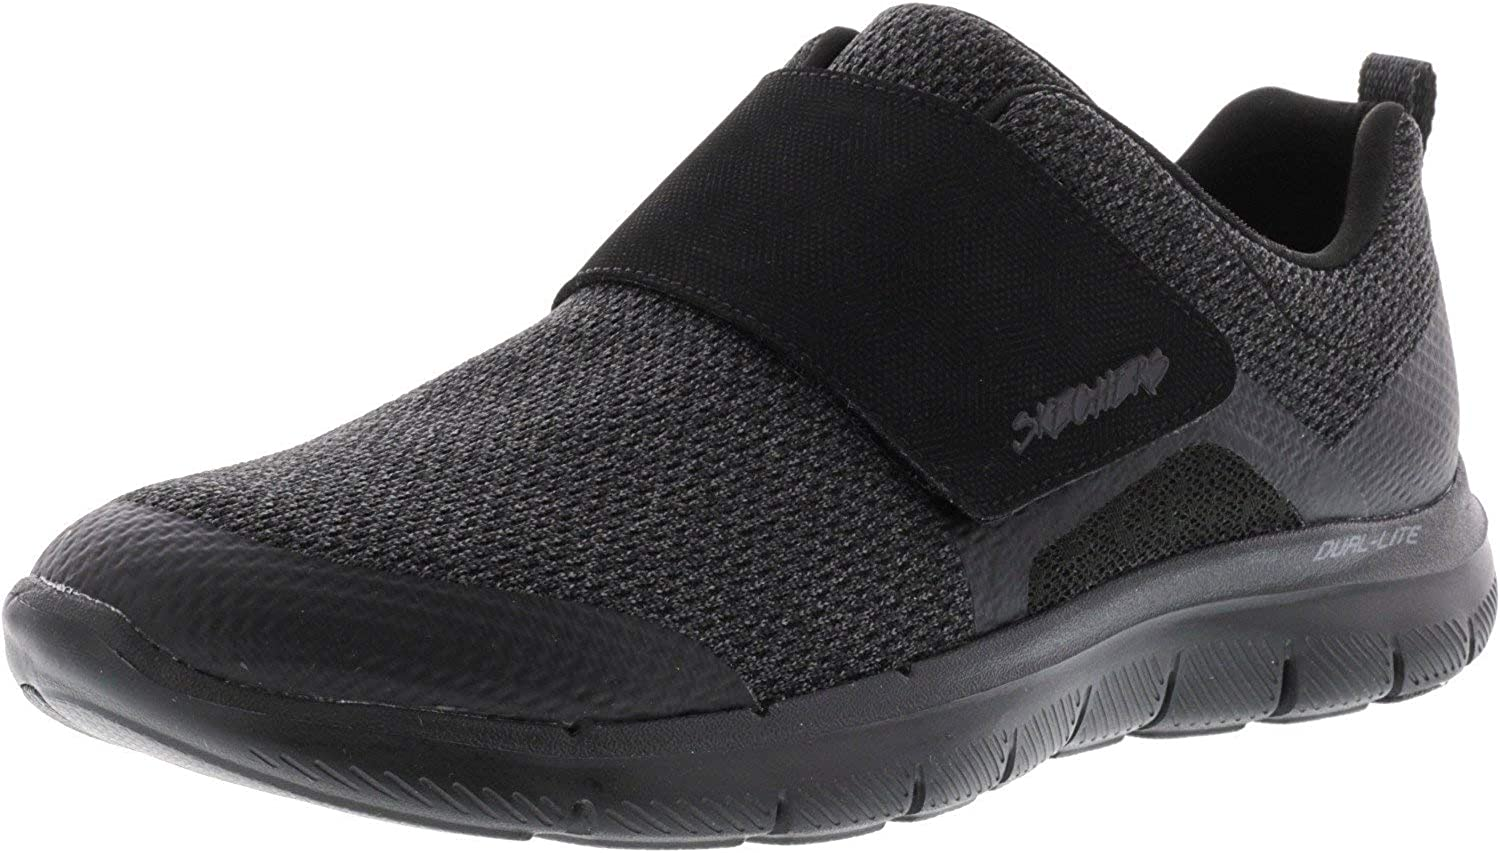 Skechers Women's Flex-Appeal 2.0 Step Forward Cross Training Black B(M) US